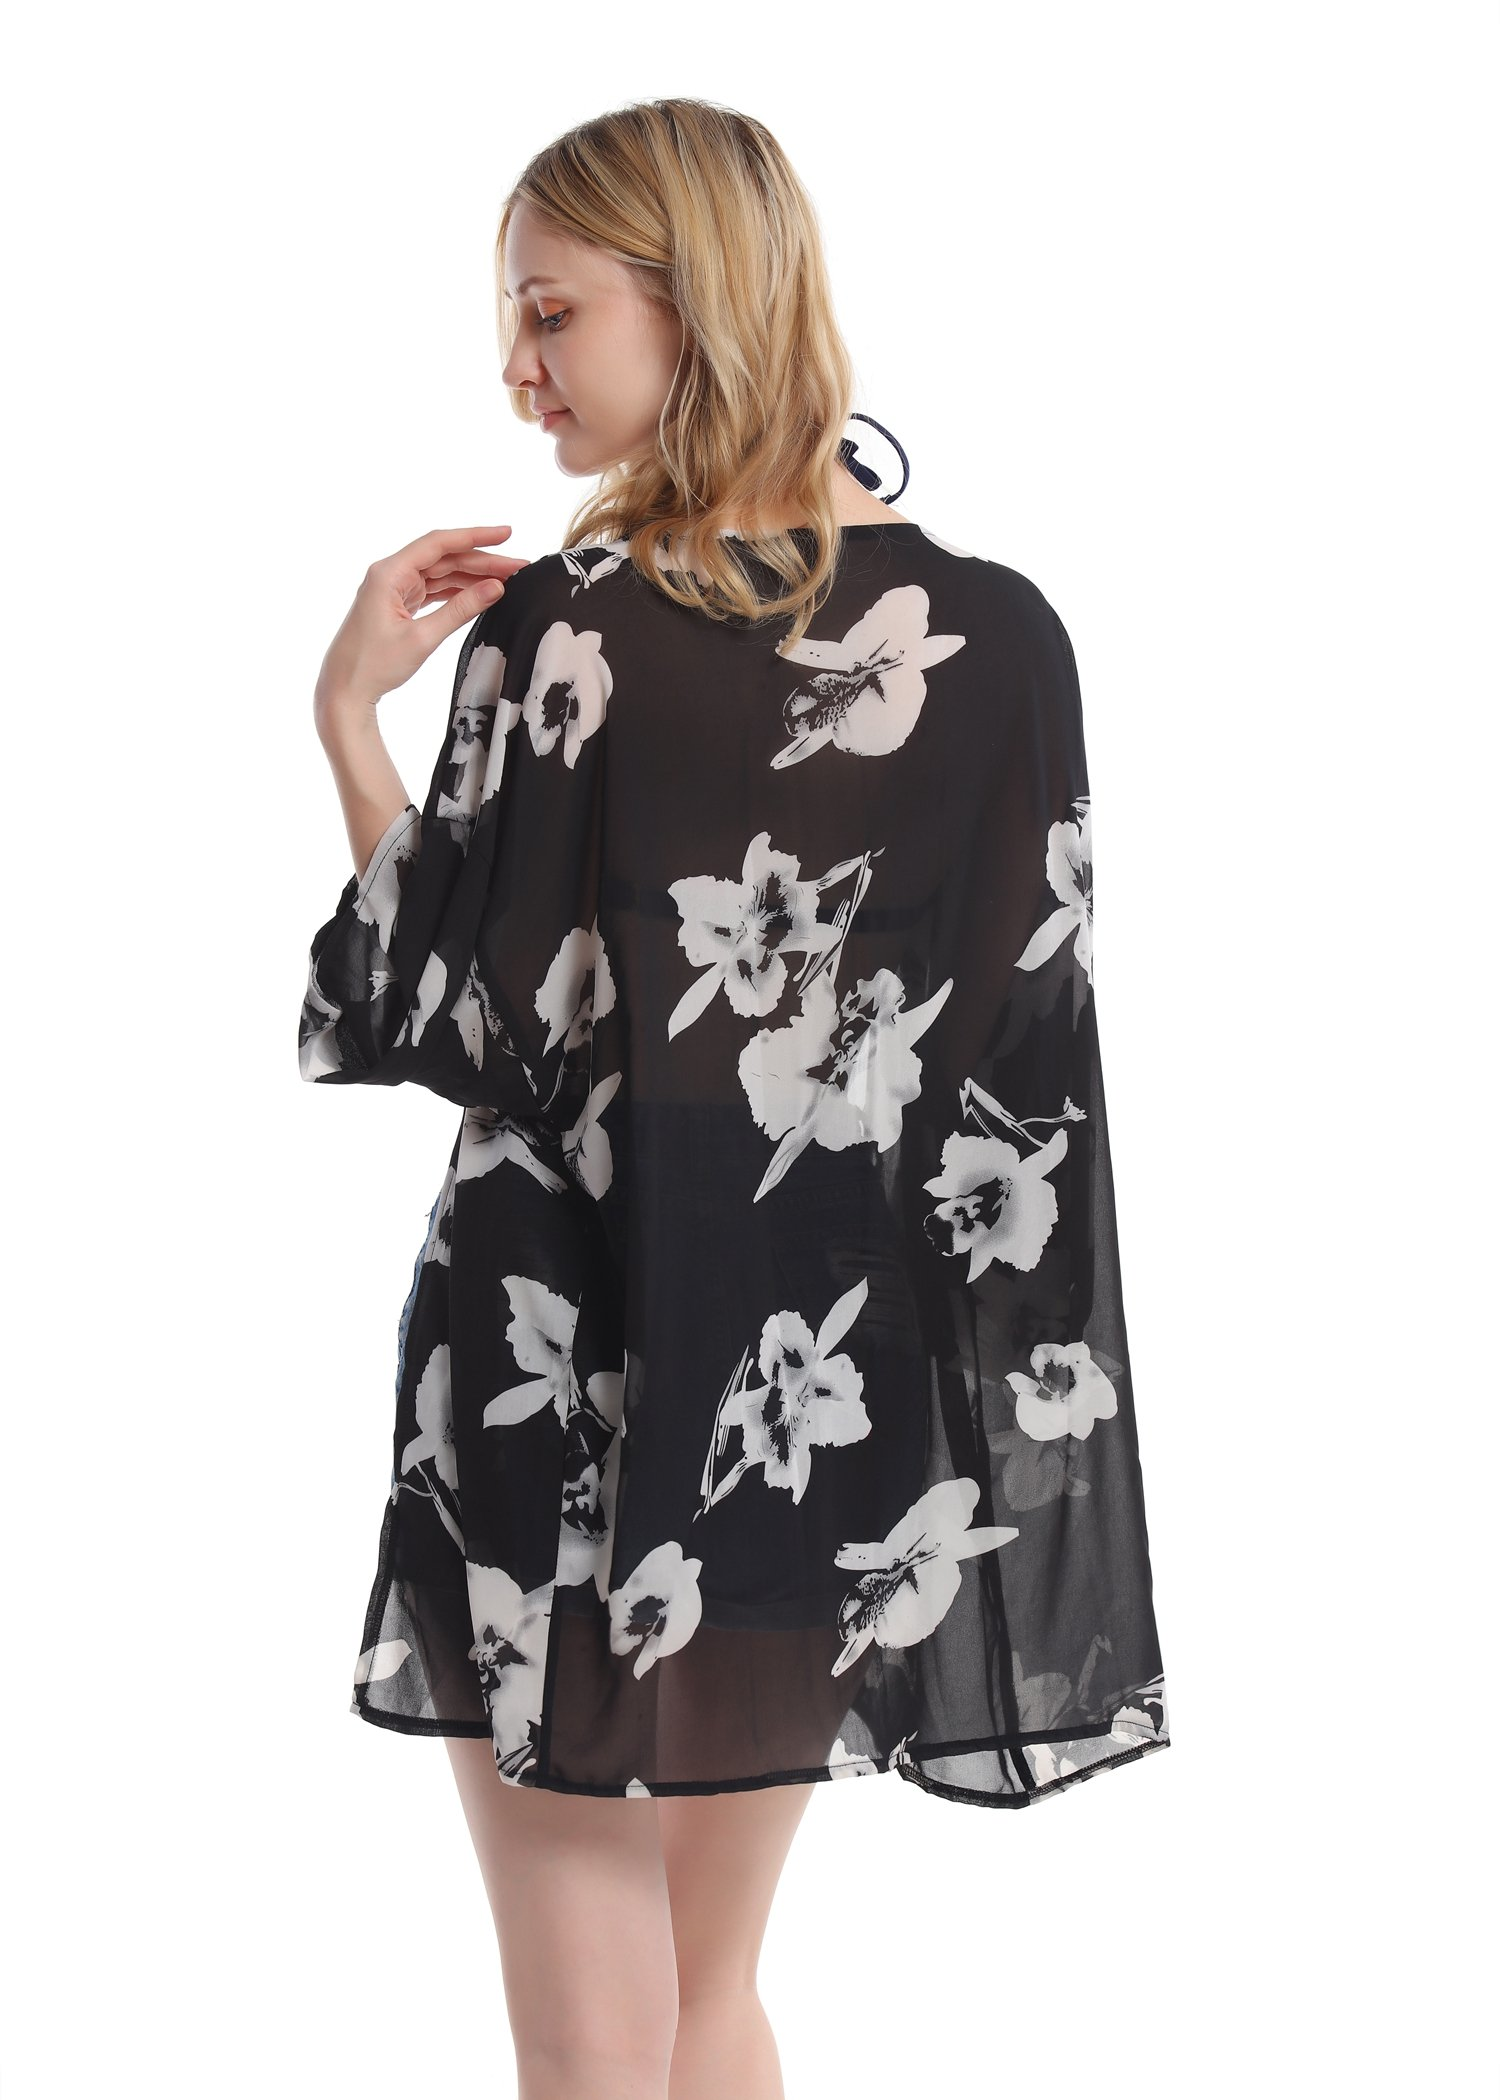 Women's Floral Chiffon Kimono Top - Ladies Sheer Flower 3/4 Sleeves Beach Cover Up for Bikini,Beachwear and Cardigan(Black&White,XL) by soul young (Image #2)